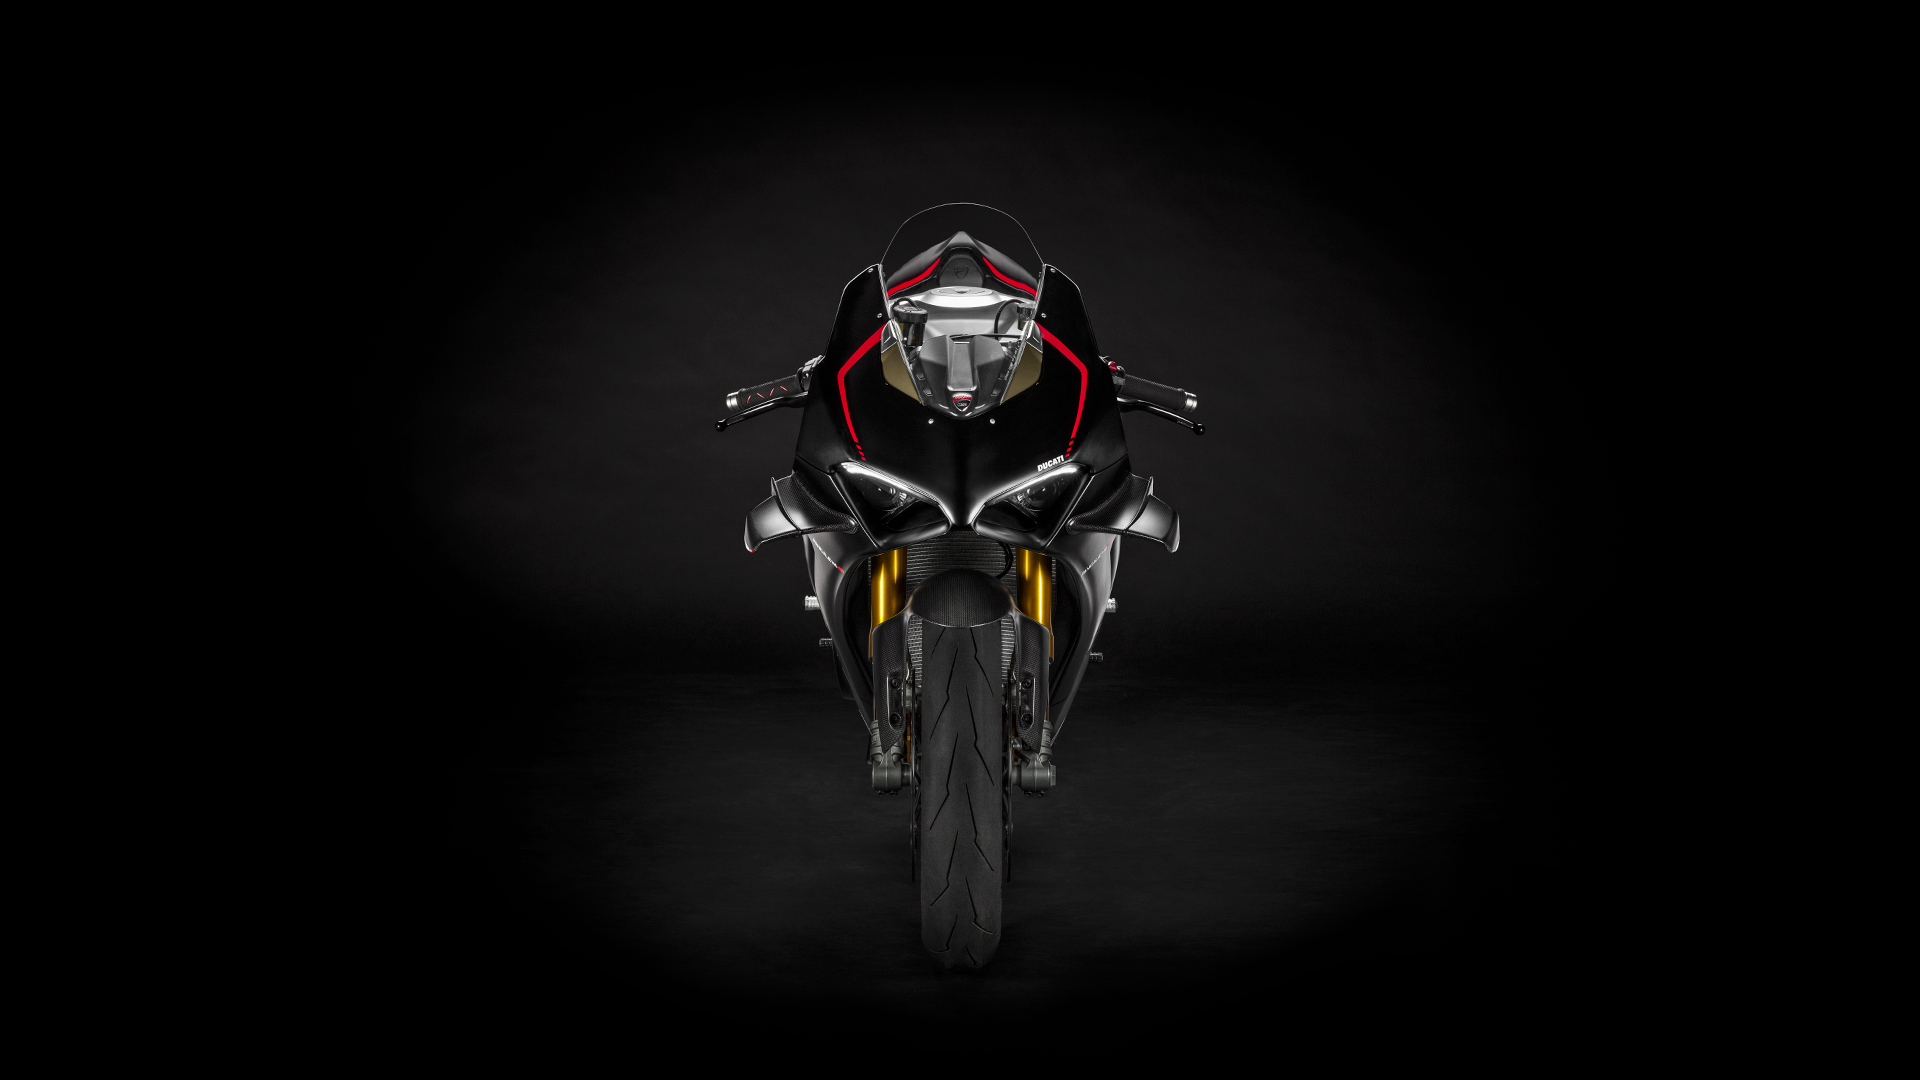 Ducati V4 Panigale - Page 23 Pv4-sp15